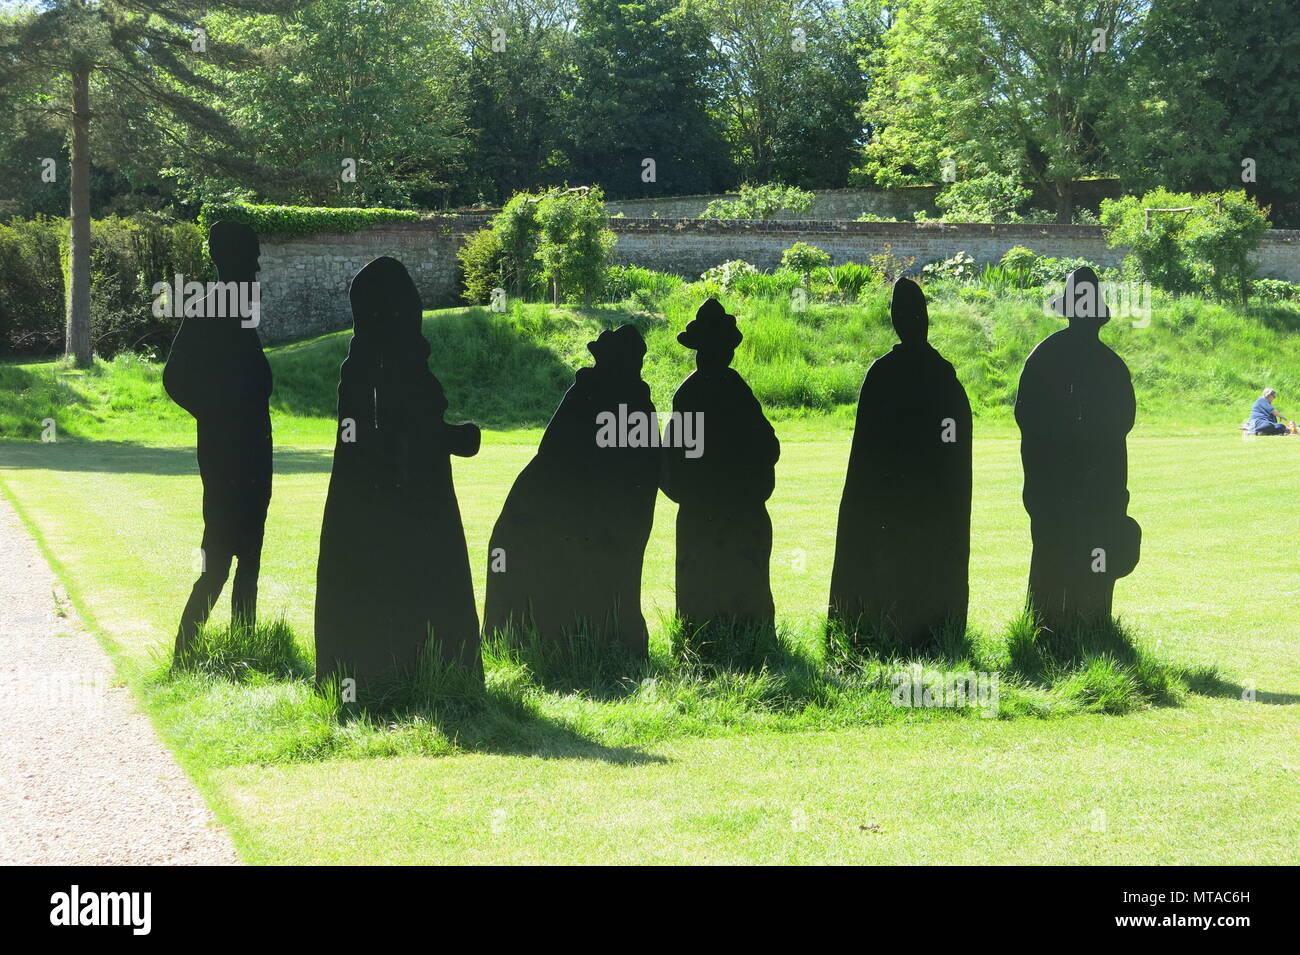 """Six black silhouettes stand on the lawns at Ightham Mote as National Trust fundraising to obtain the painting """"A Game of Bowls"""" by John Singer Sargent. Stock Photo"""